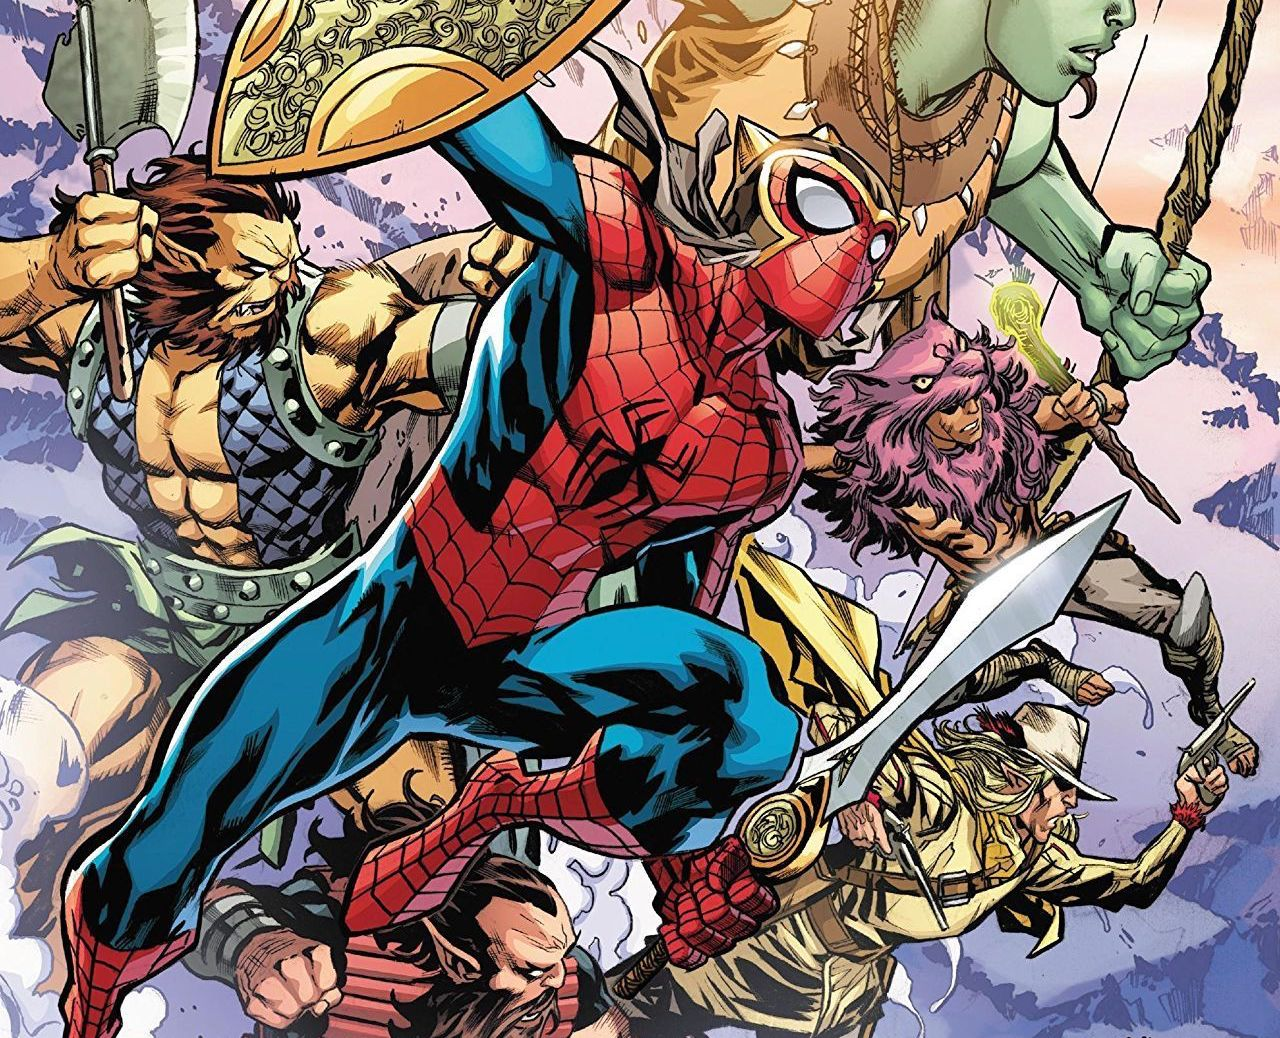 Spider-Man leads a band of murdering Asgardians. Wait what?!